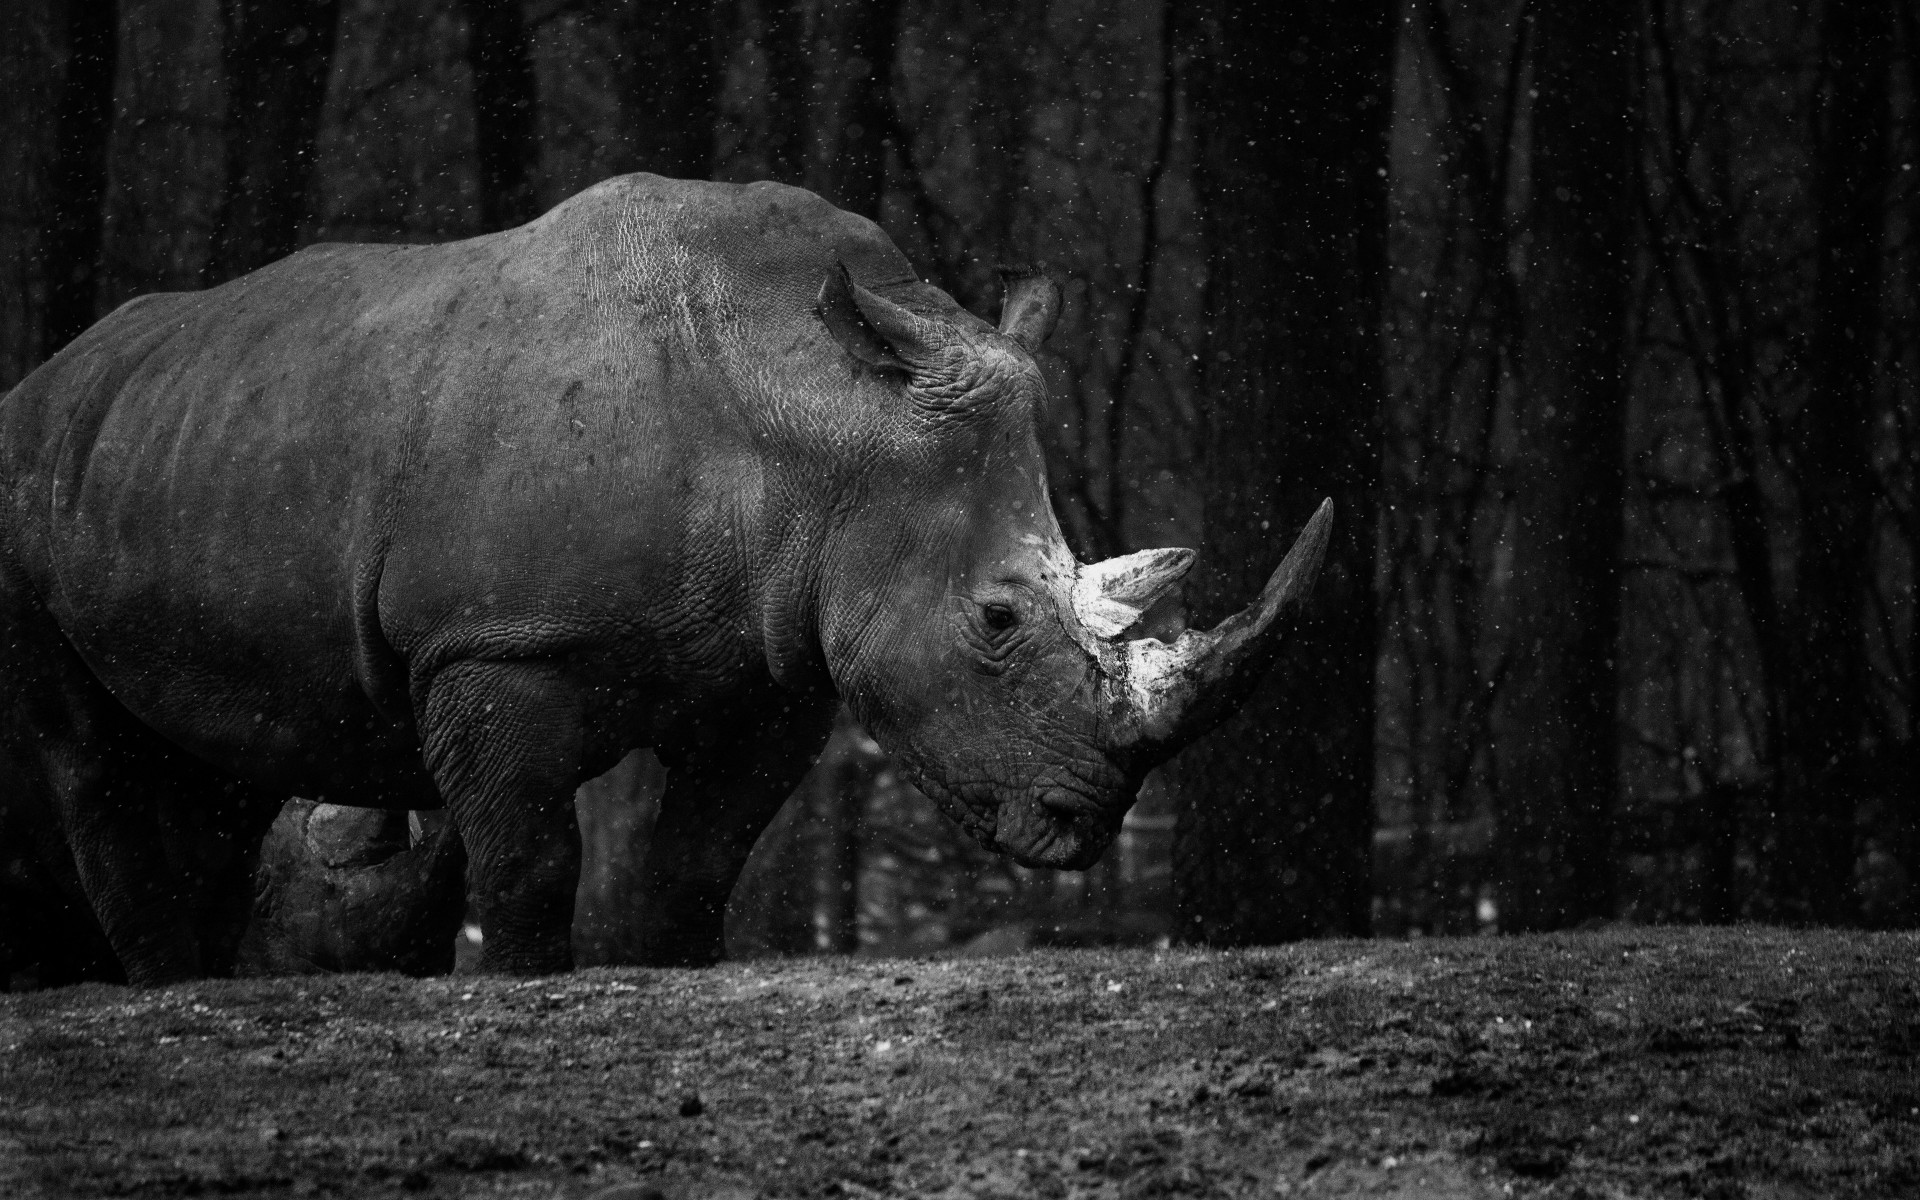 Rhino at zoo | 1920x1200 wallpaper